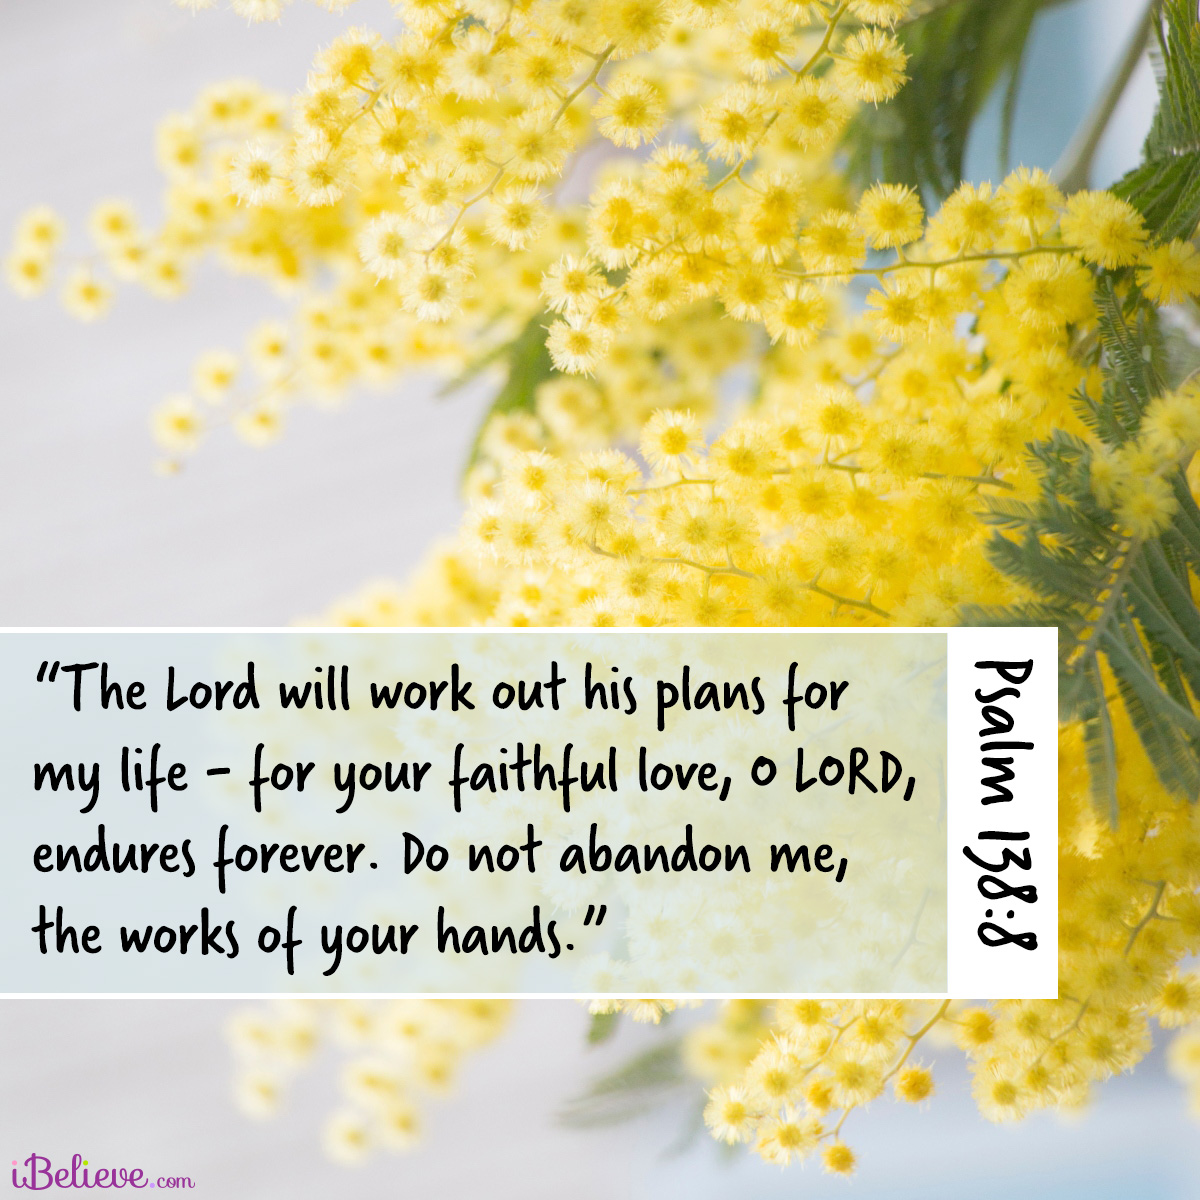 Psalm 138:8, inspirational image